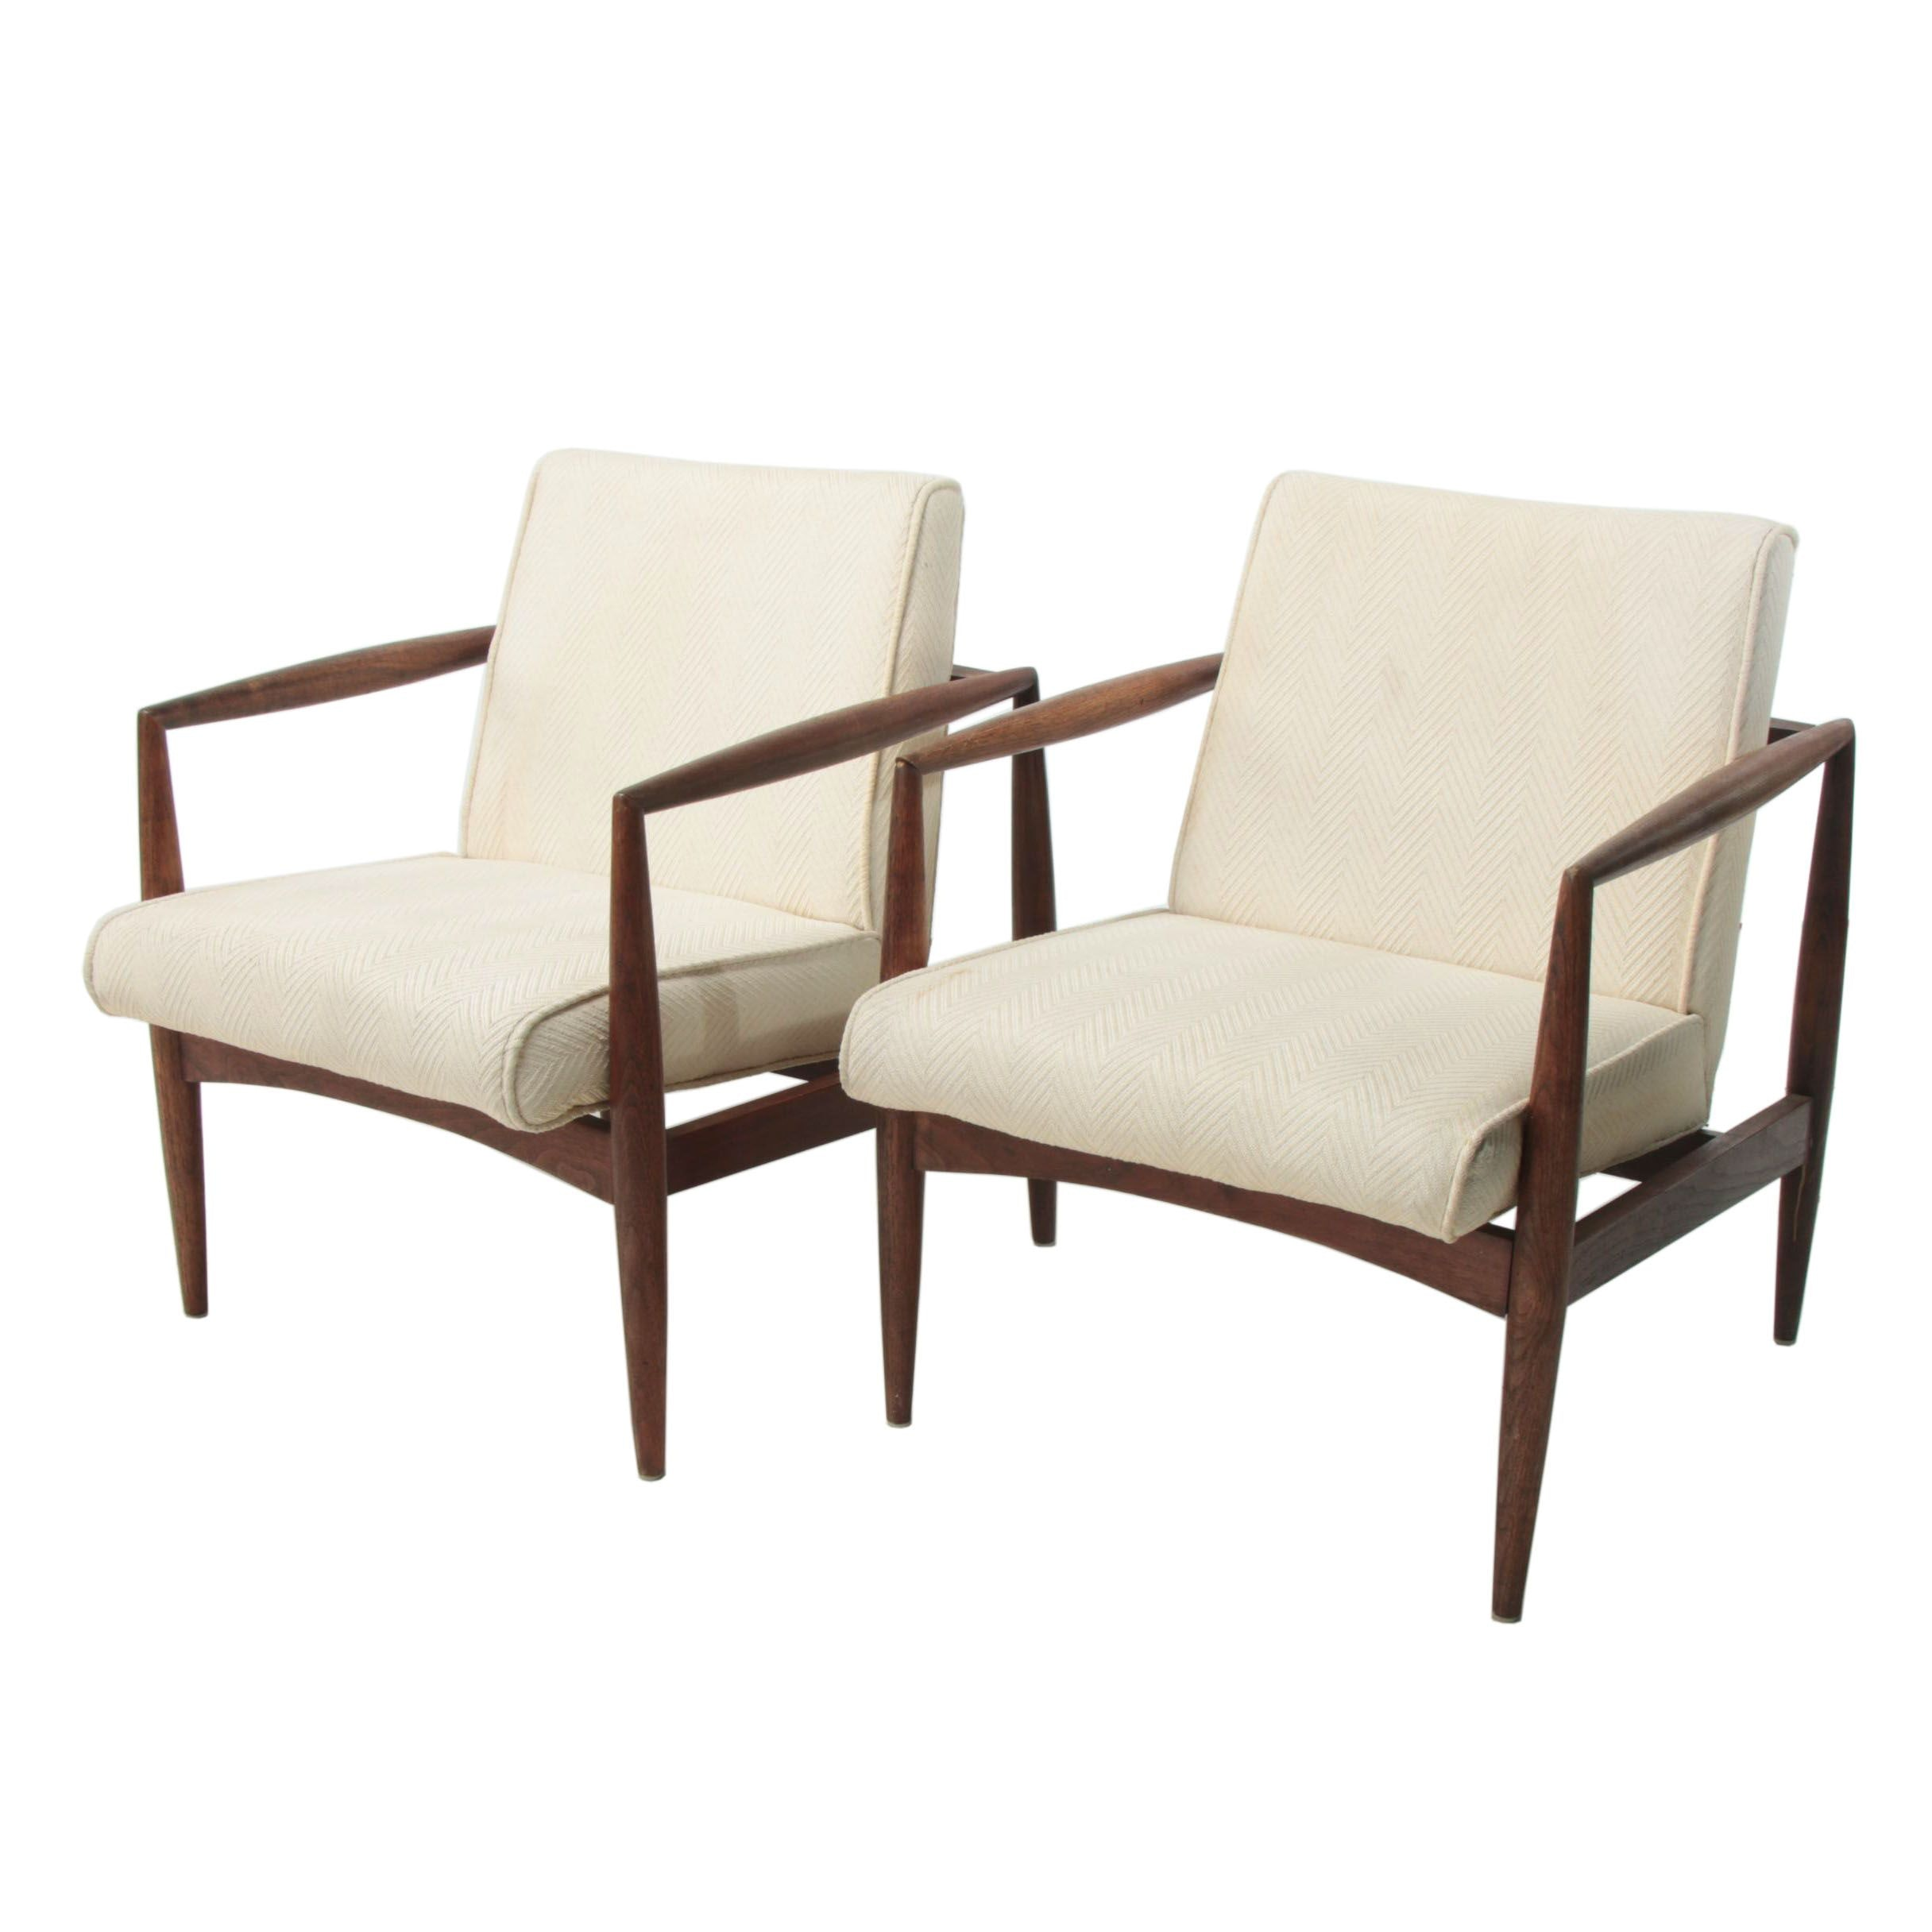 Pair of Mid Century Modern Walnut Lounge Chairs